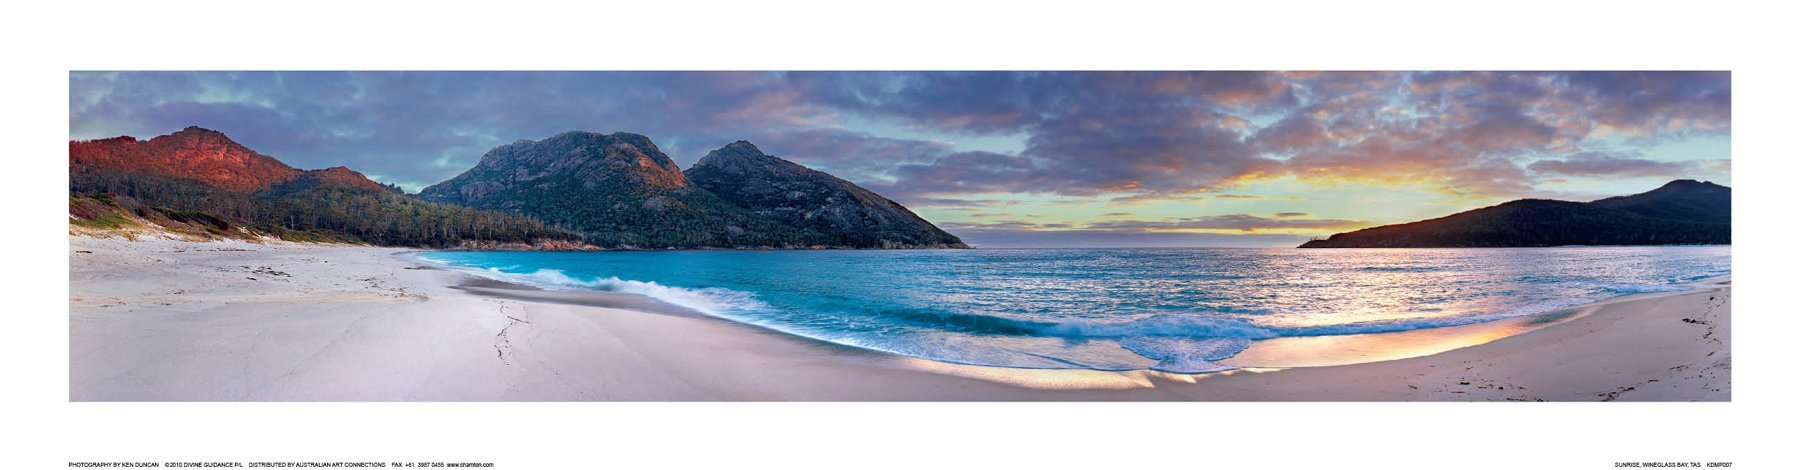 Sunrise, Wineglass Bay, TAS